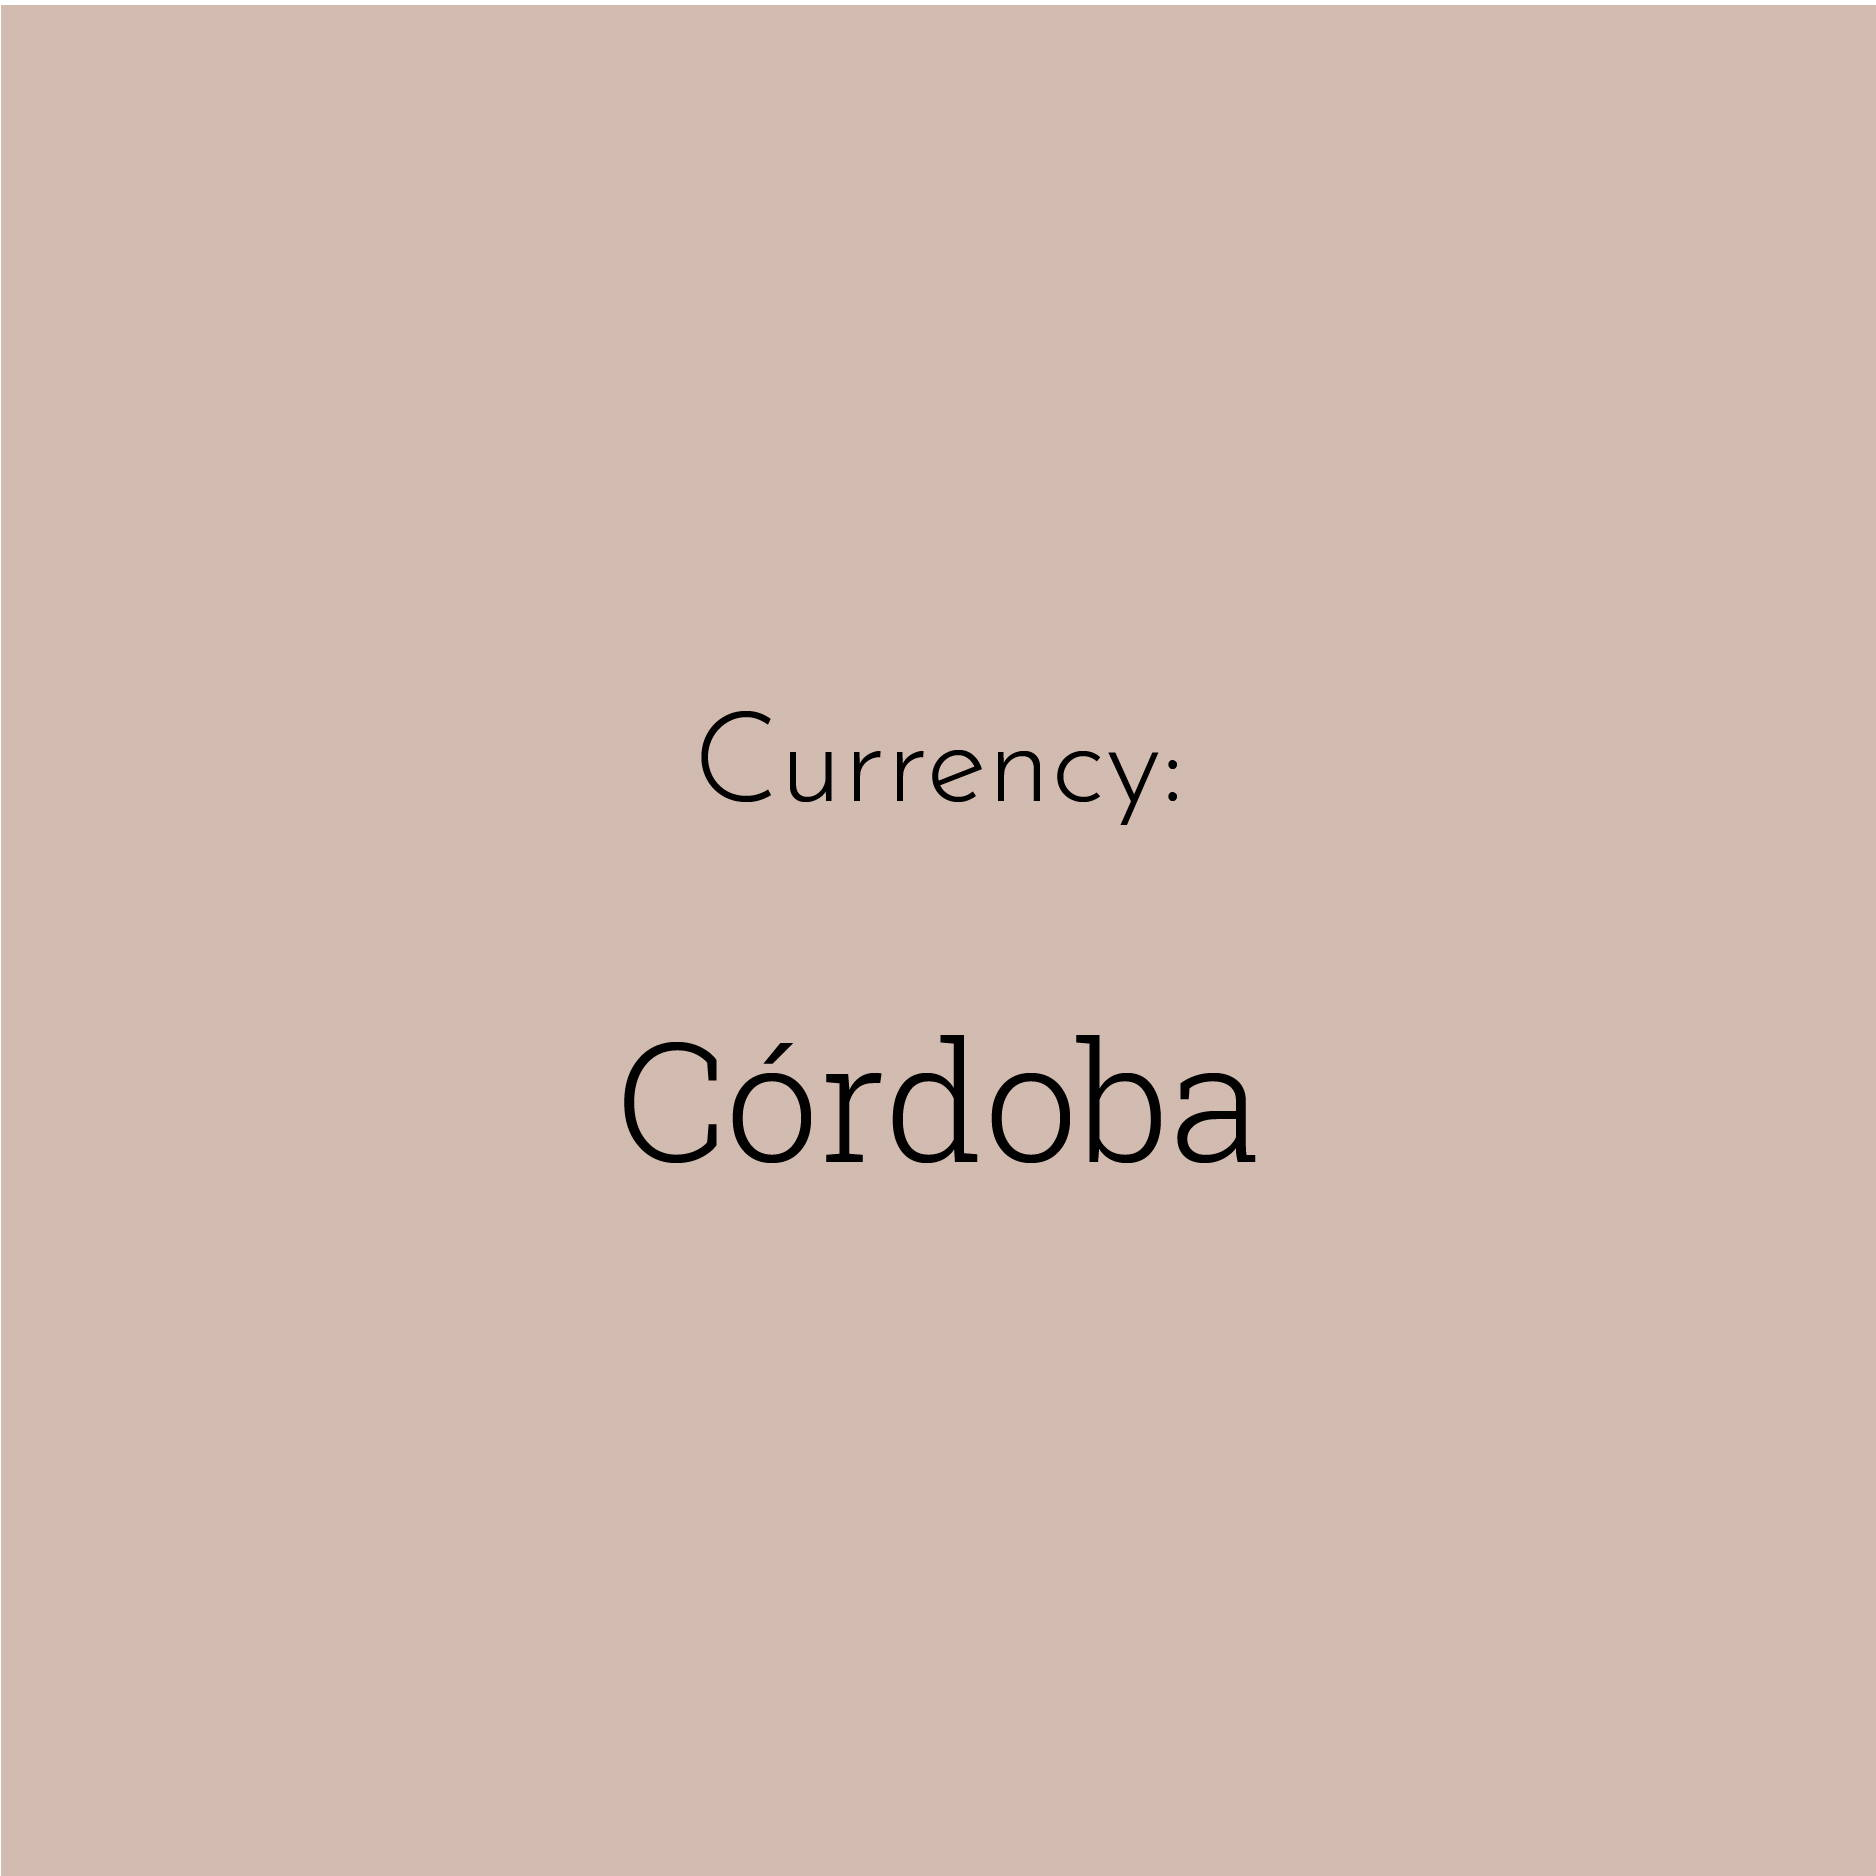 "A solid brown block contains the text ""Currency: Córdoba"""